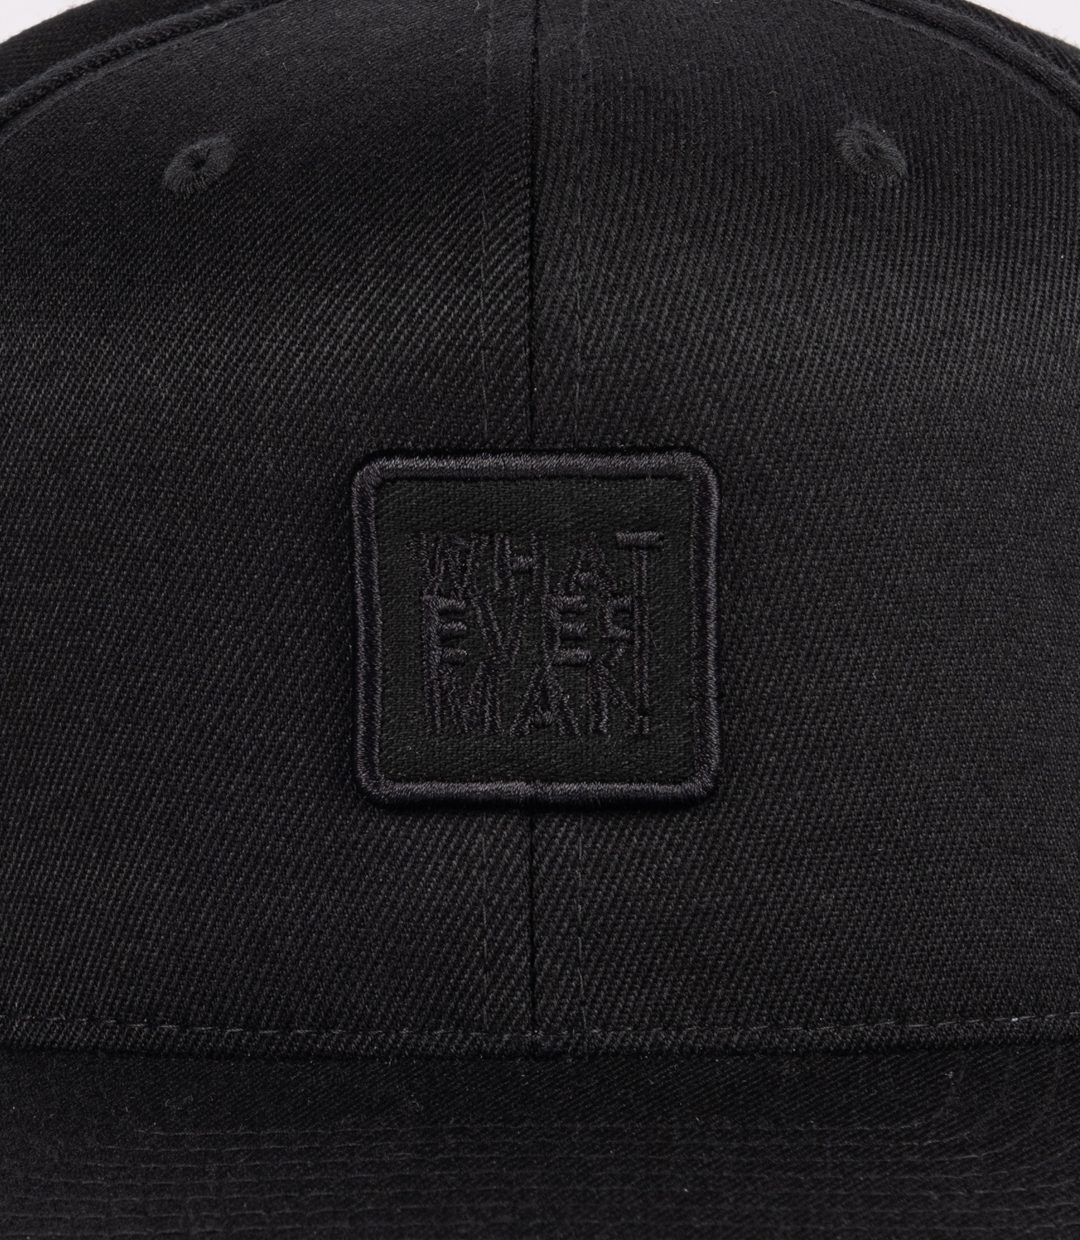 Whatever Man Patch Black Detail